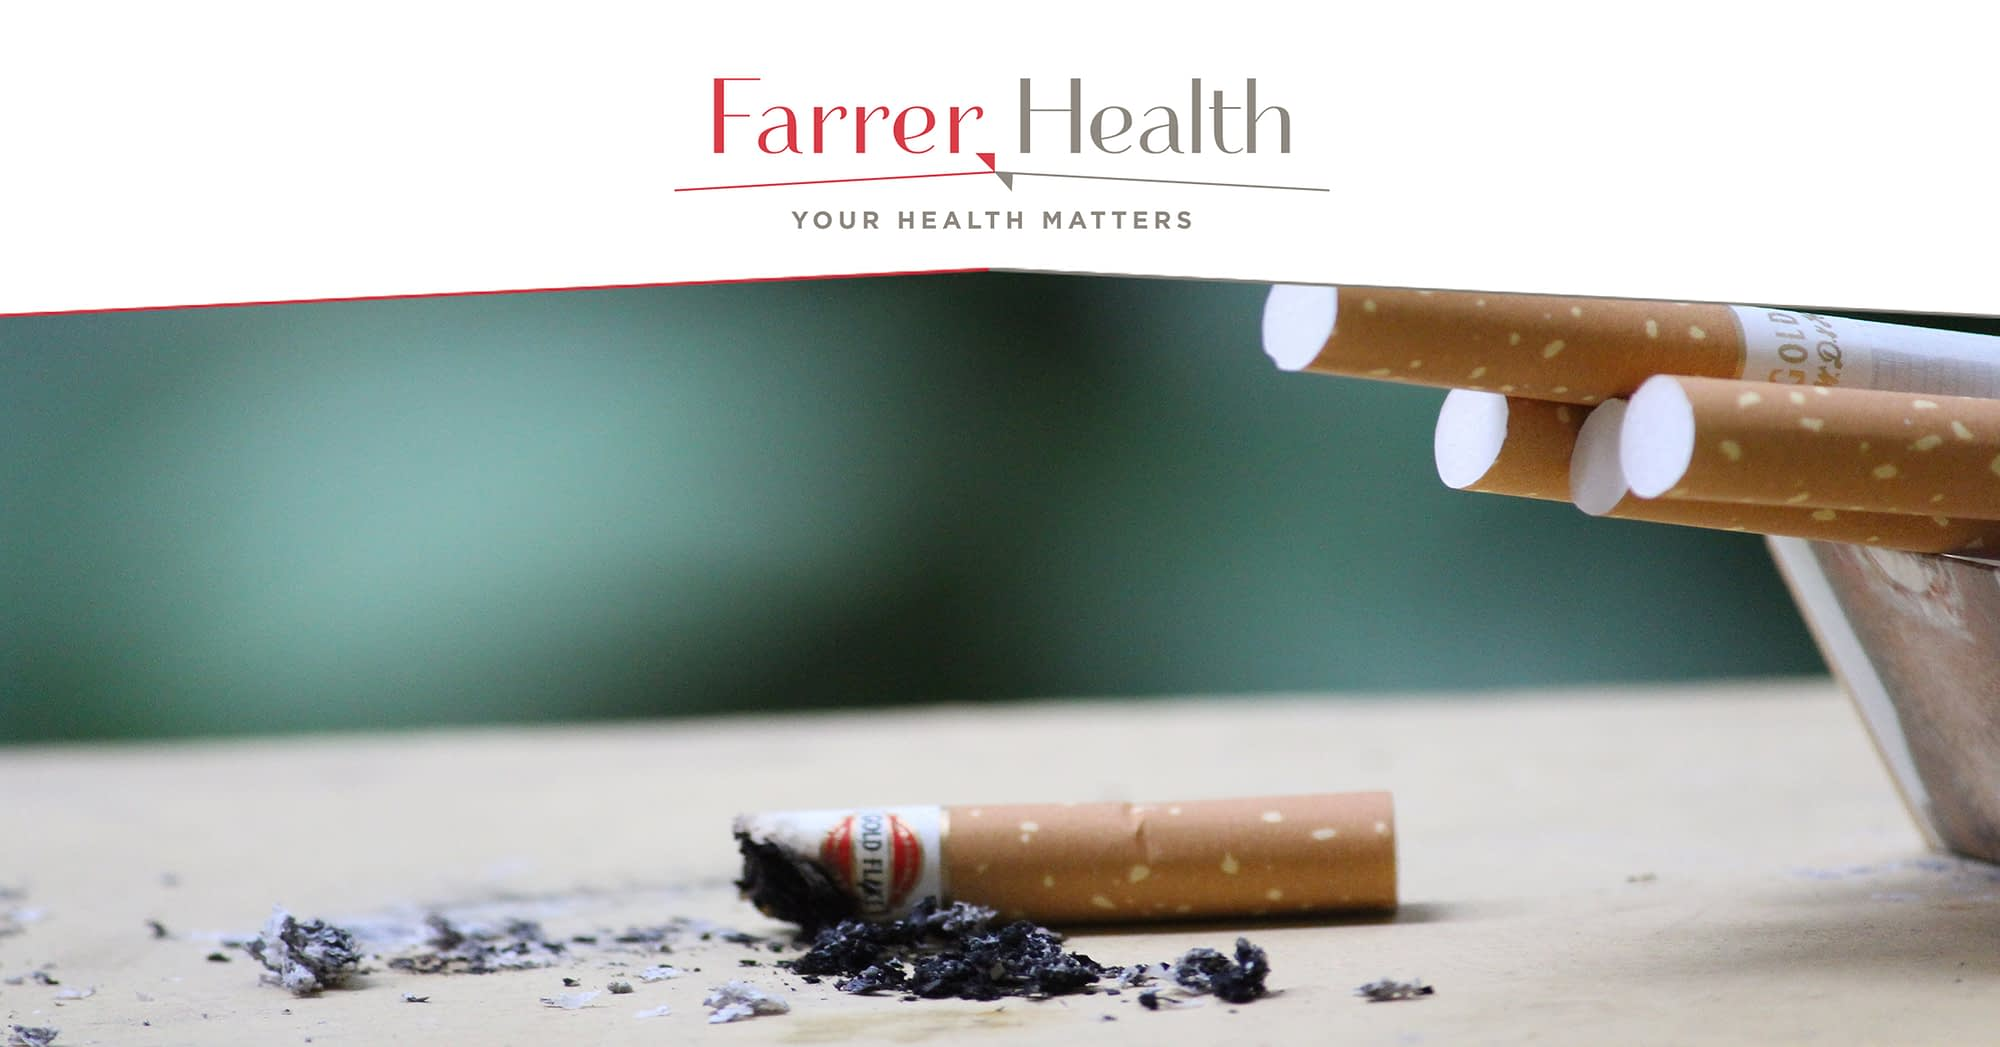 lung cancer in never smokers | FarrerHealth